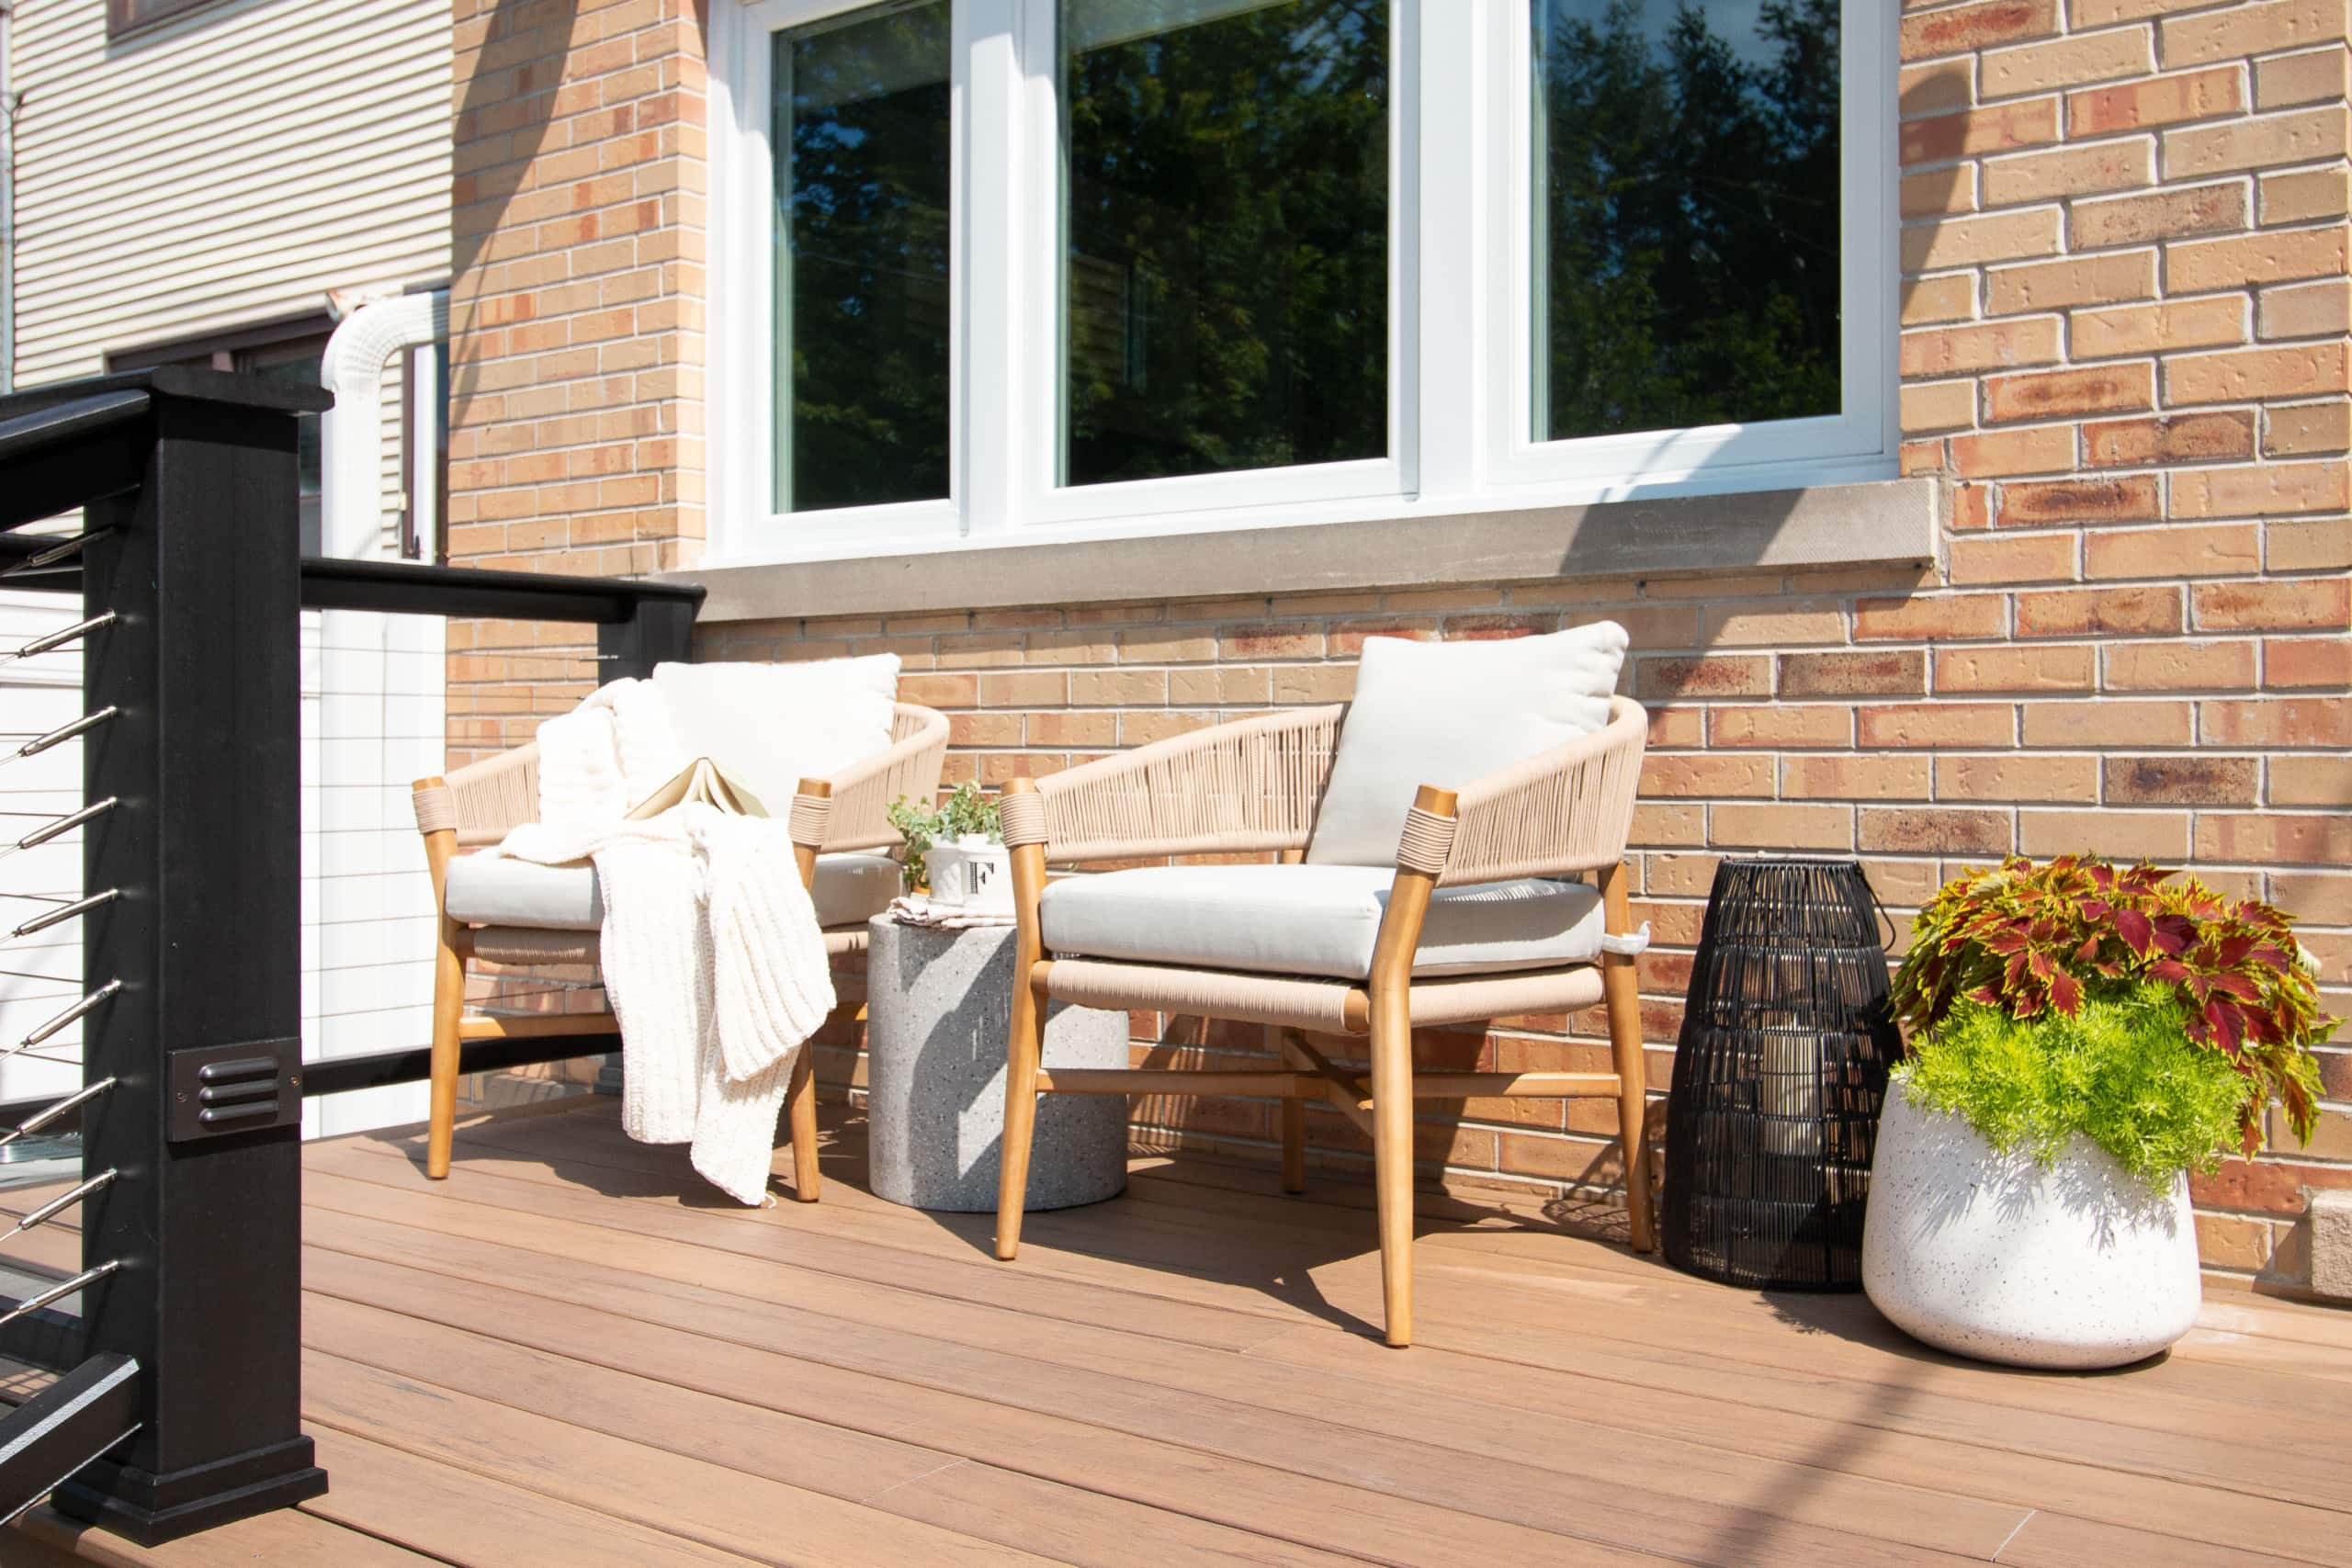 Buy covers for your outdoor furniture to protect from rain